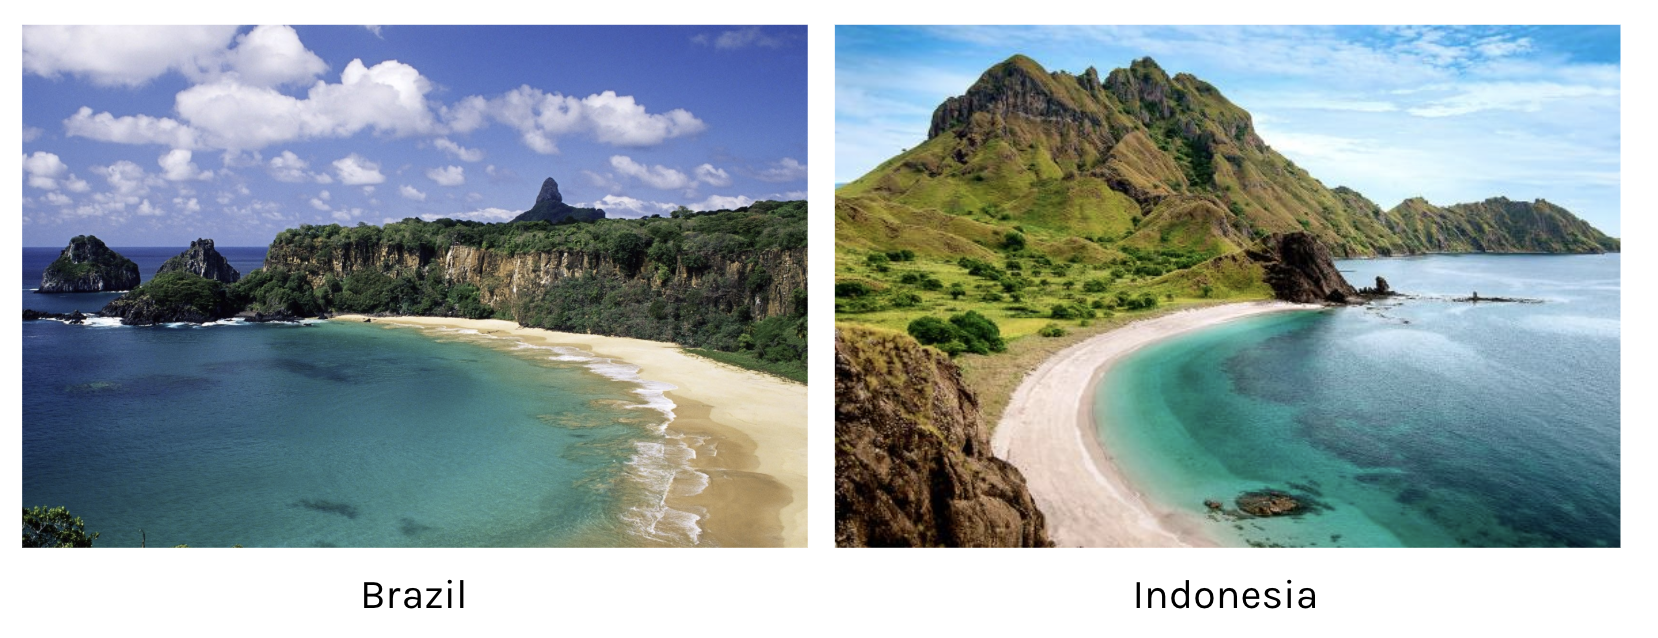 Beaches in both countries are equally highly ranked…